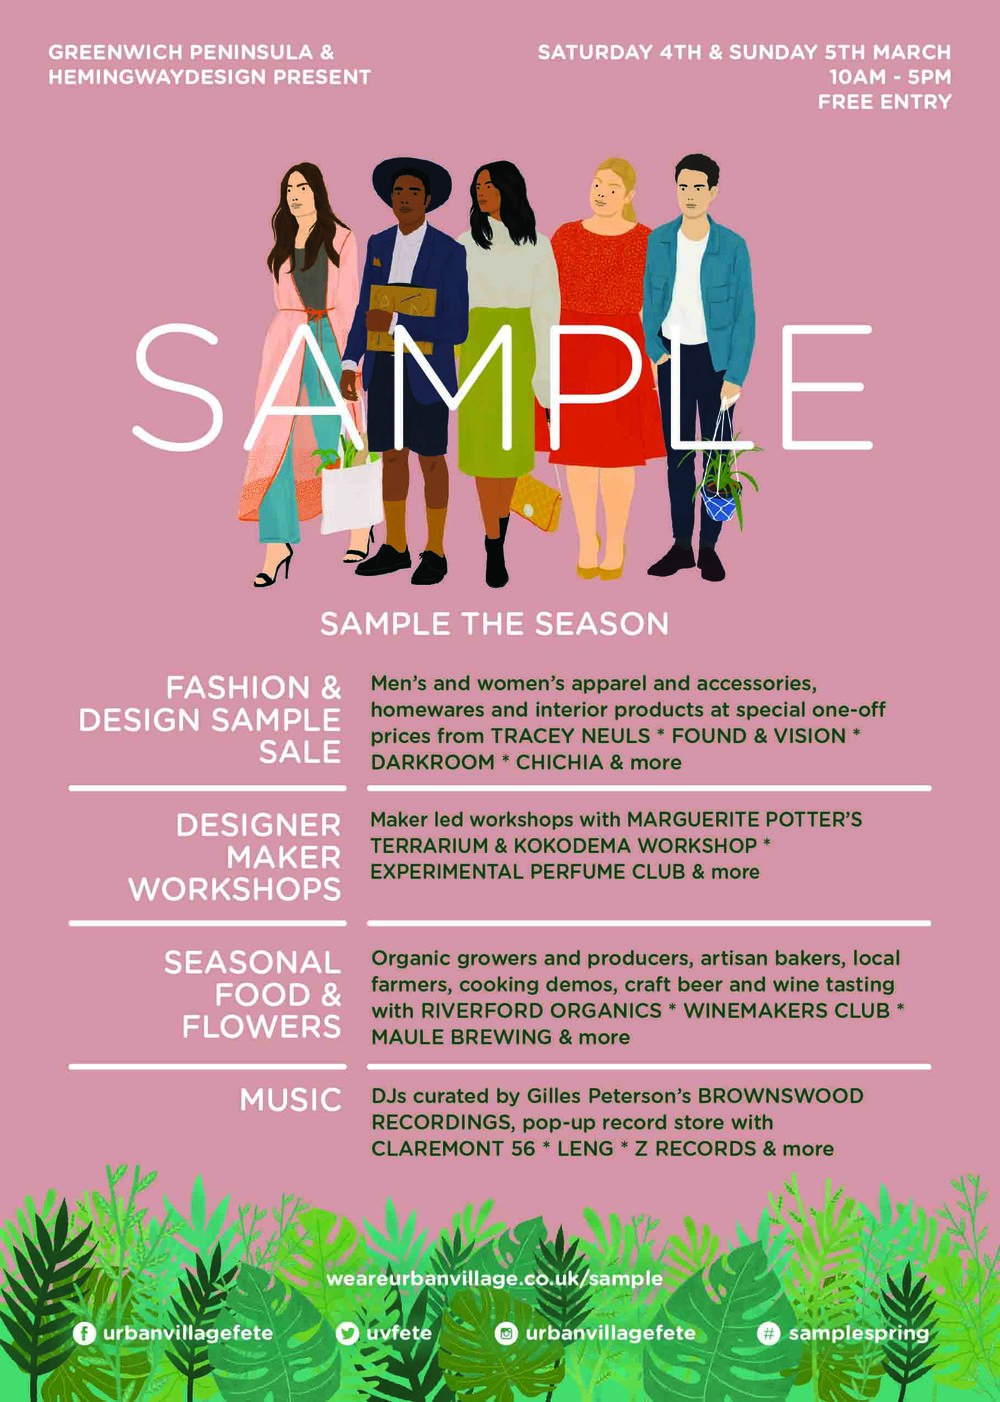 become a real hub of creative activity curated by hemingway design its called sample and is one of many exciting events being cooked up by that team